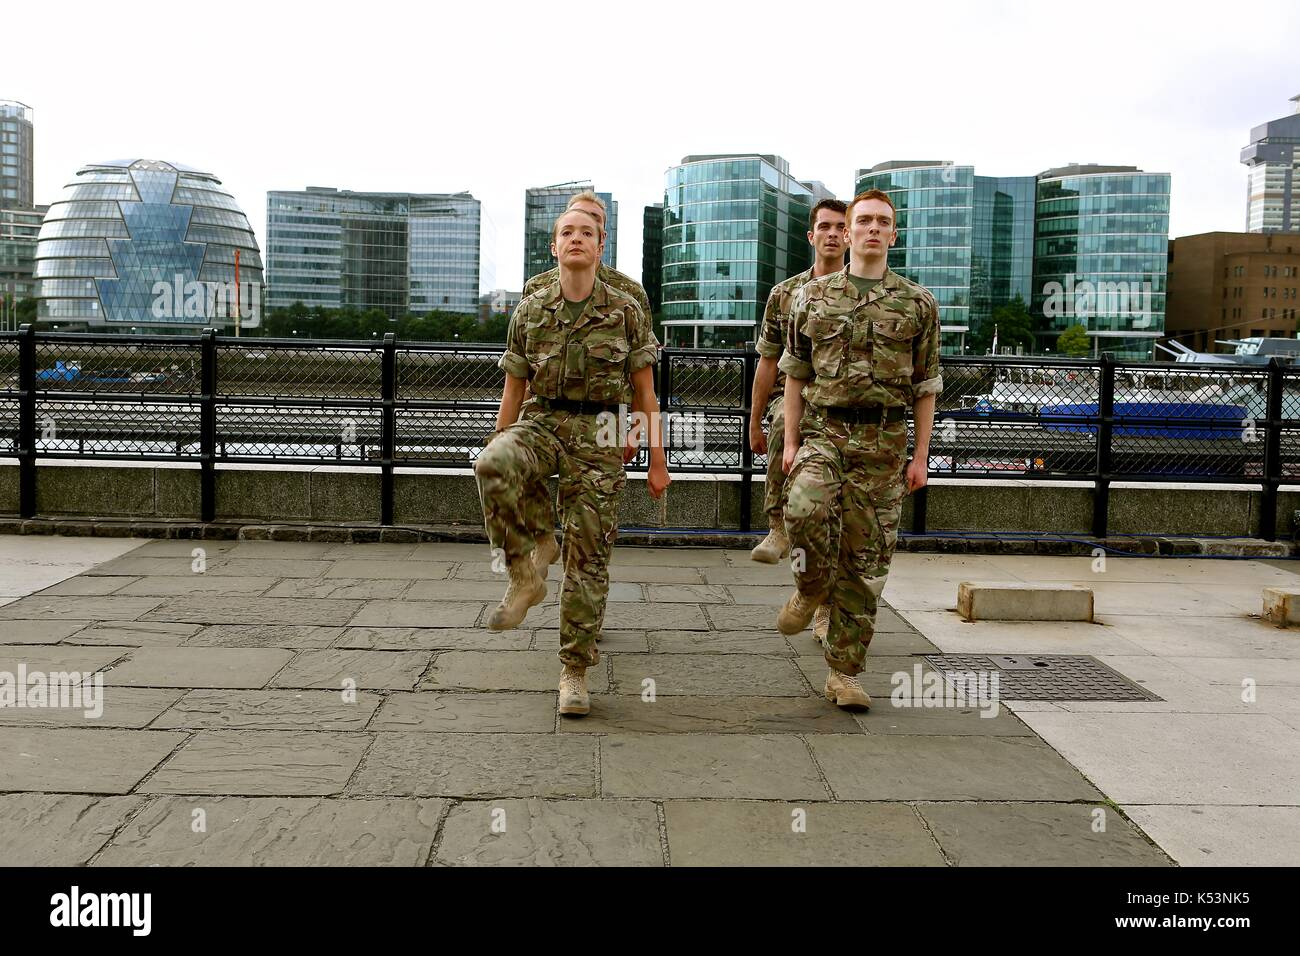 5 Soldiers by Rosie Kay The body is the frontline ... - Stock Image